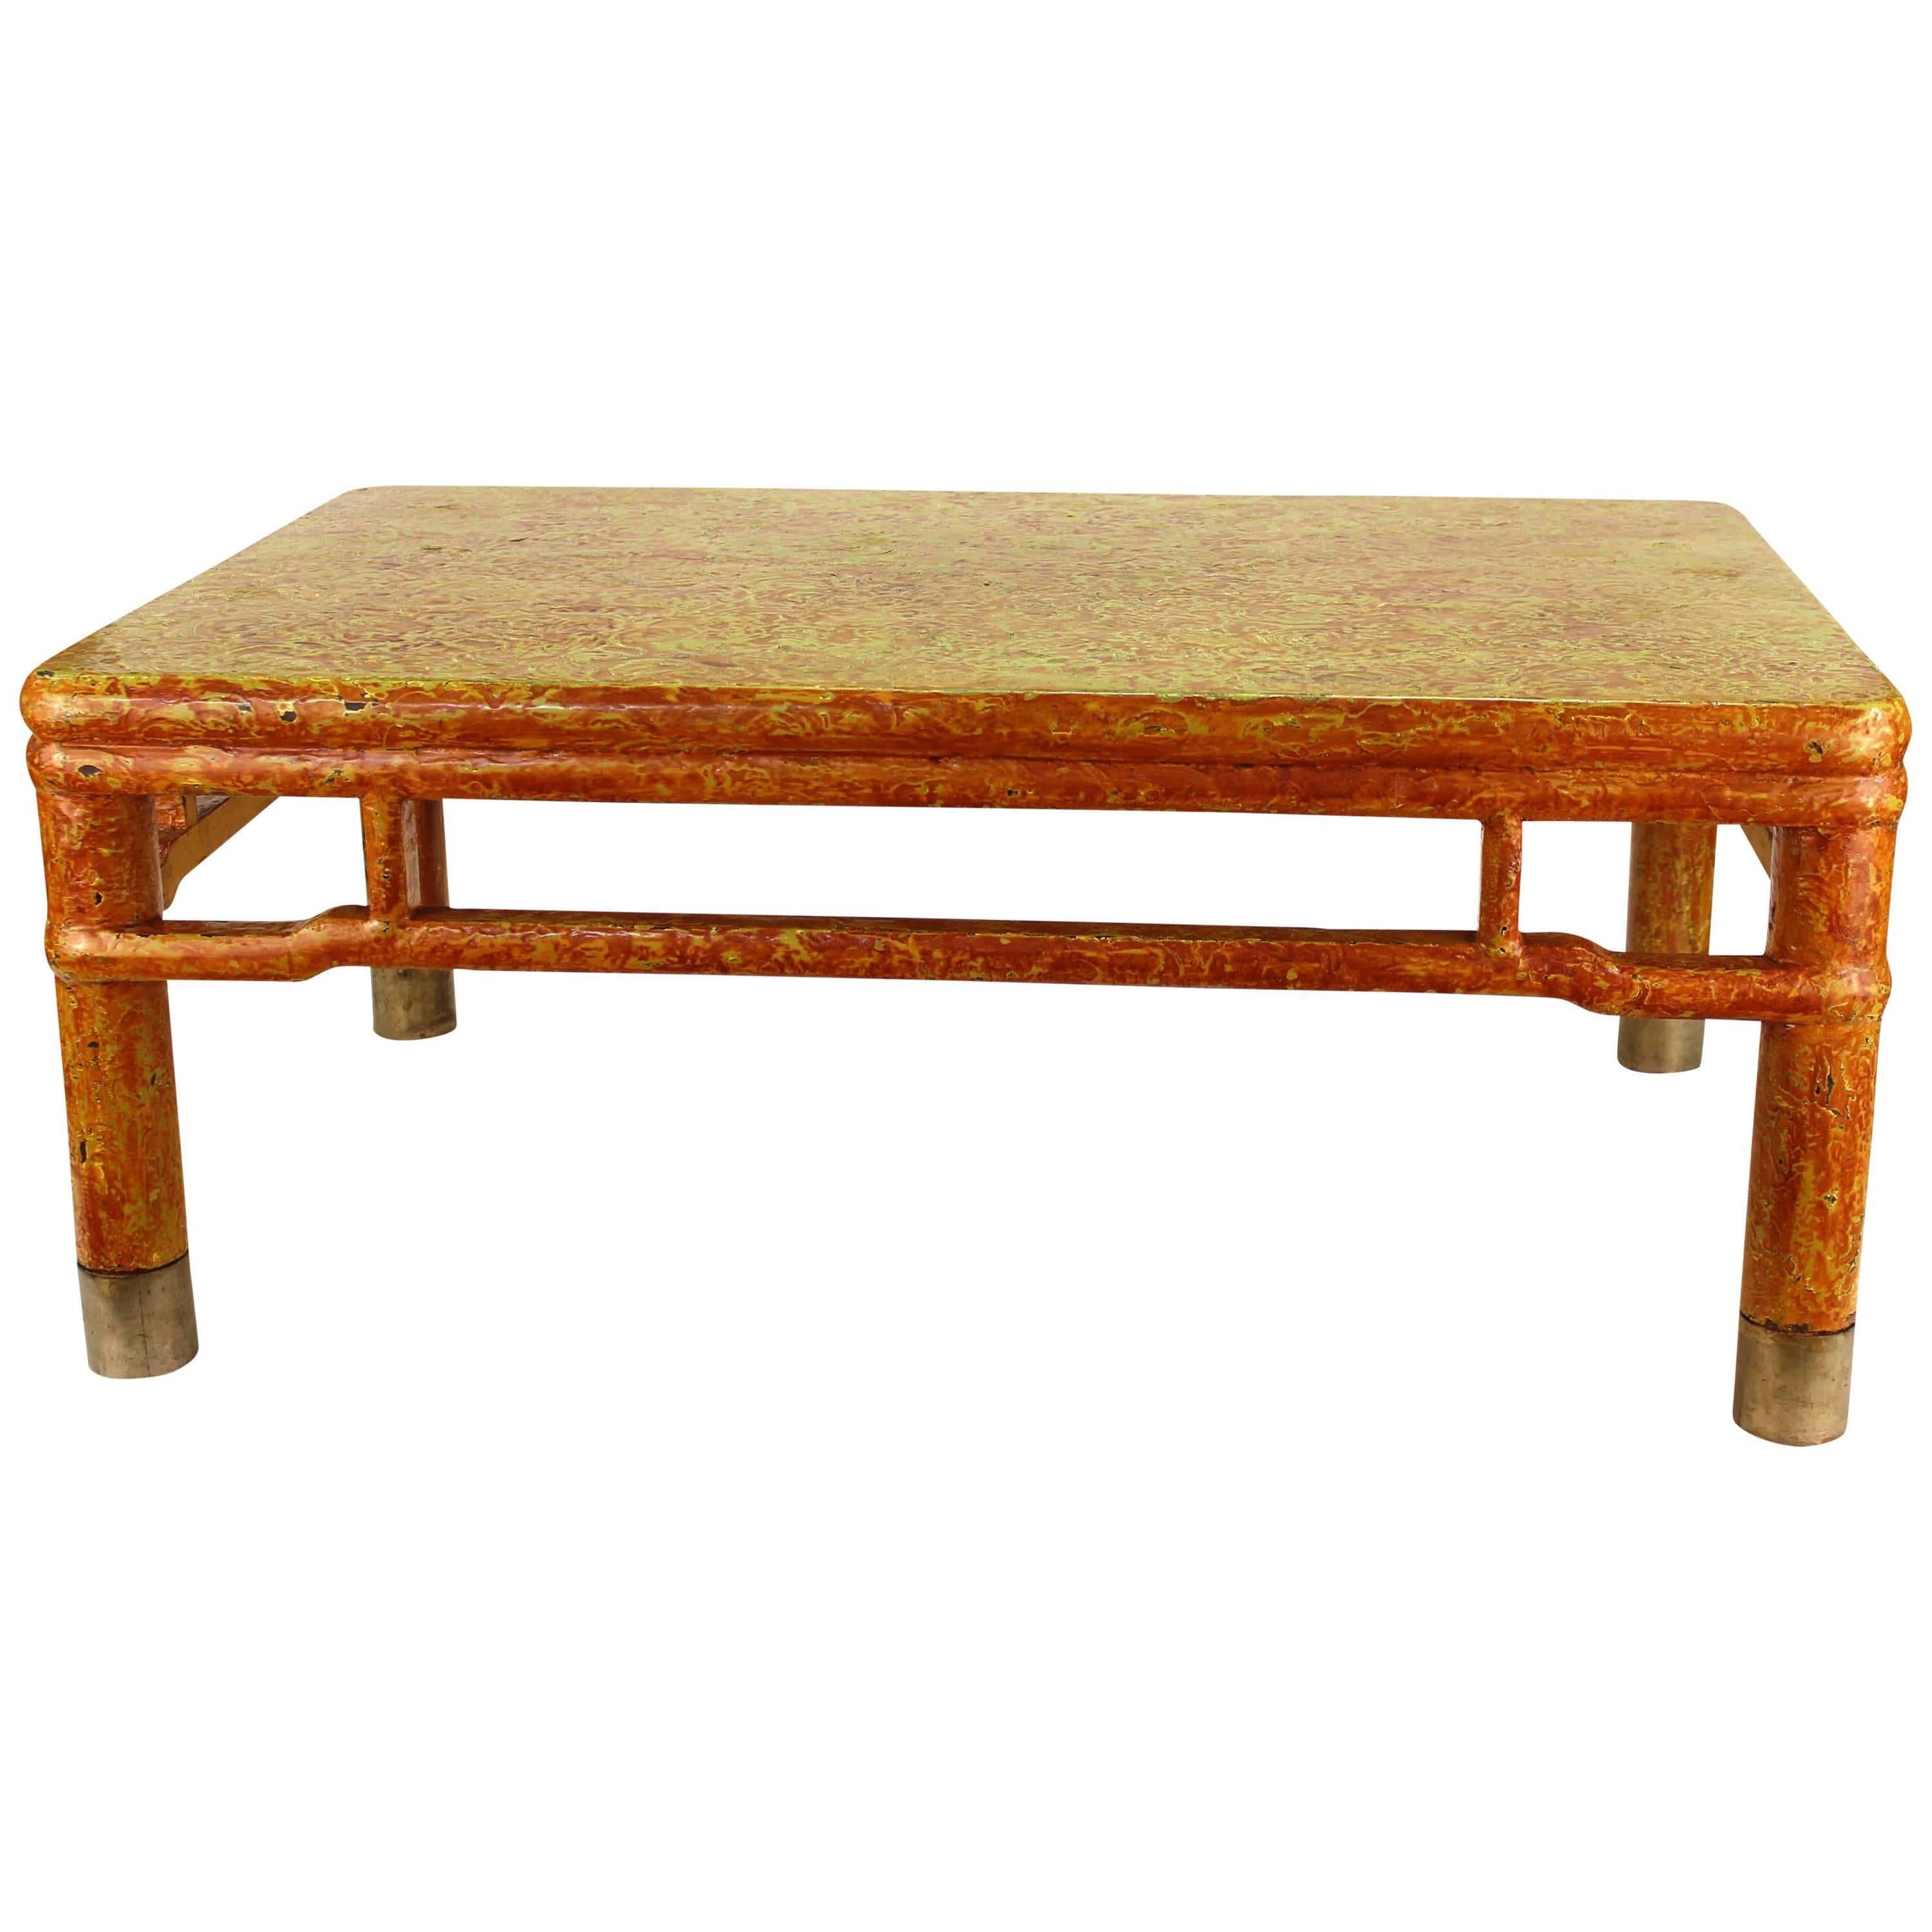 Asian Style Cocktail Table with Craquelure Finish